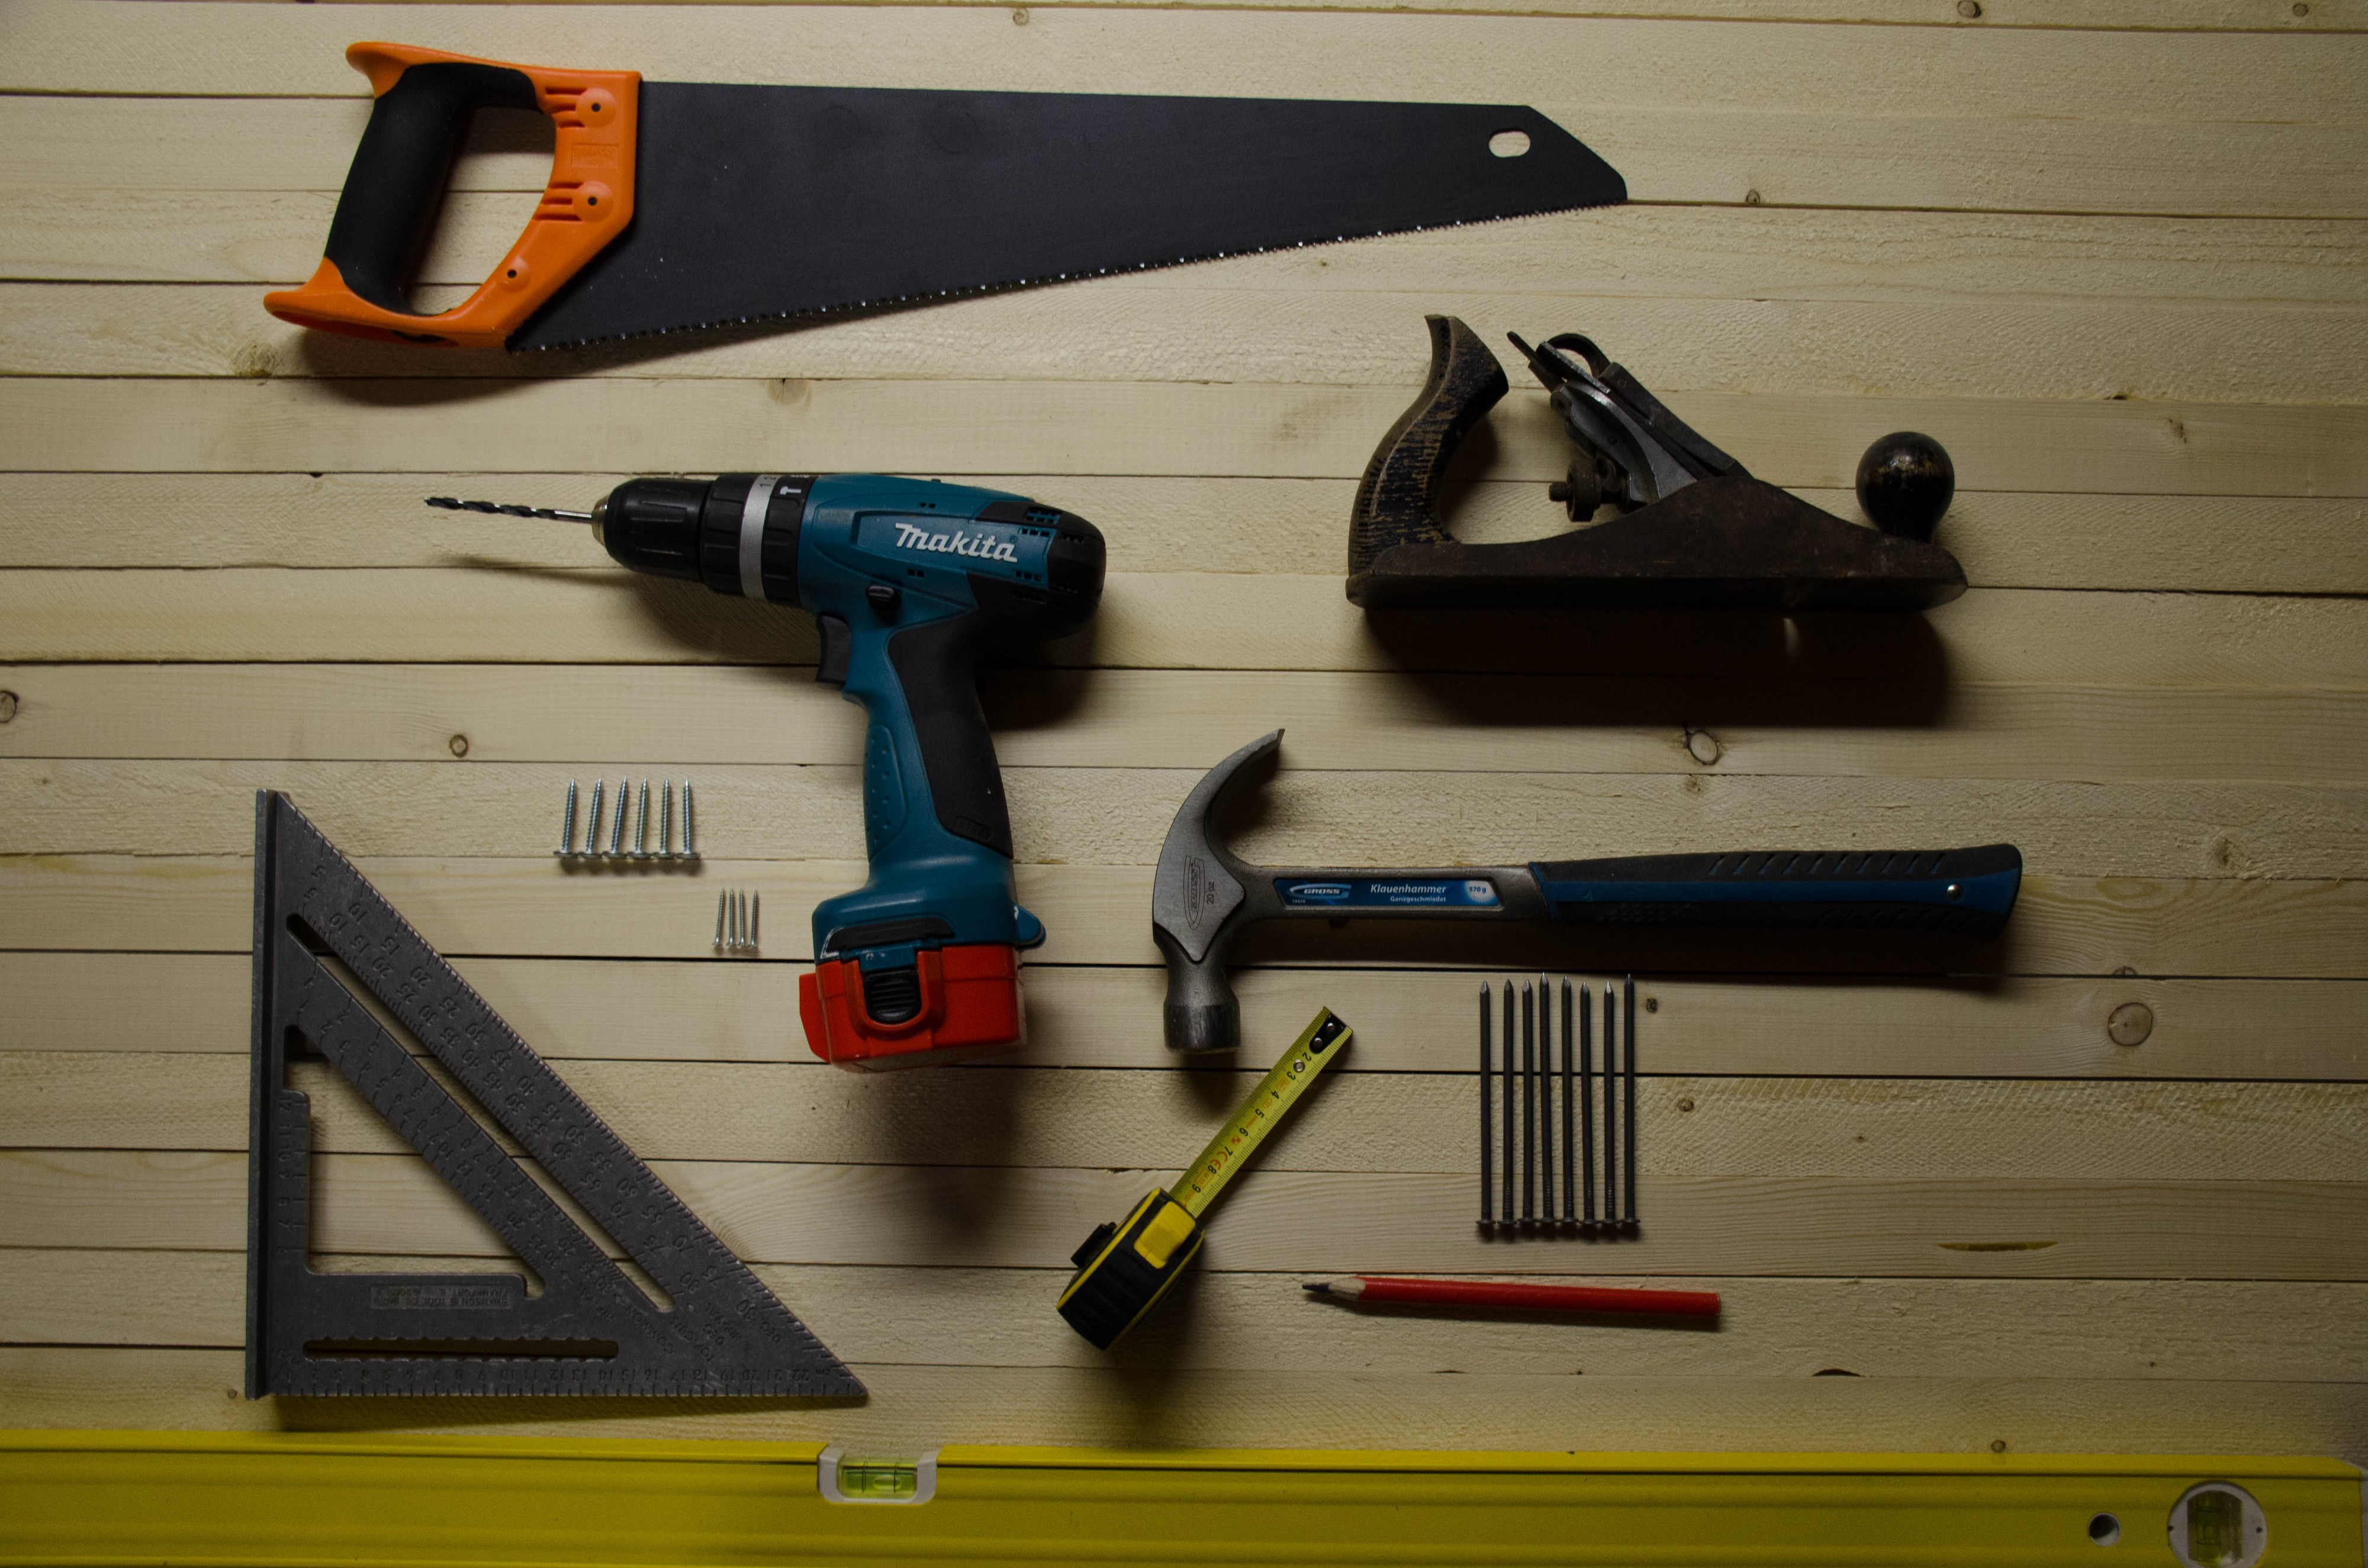 A hand saw, plane, hammer, nails, power drill, screws, tape measure, pencil, square and spirit level, neatly arranged.